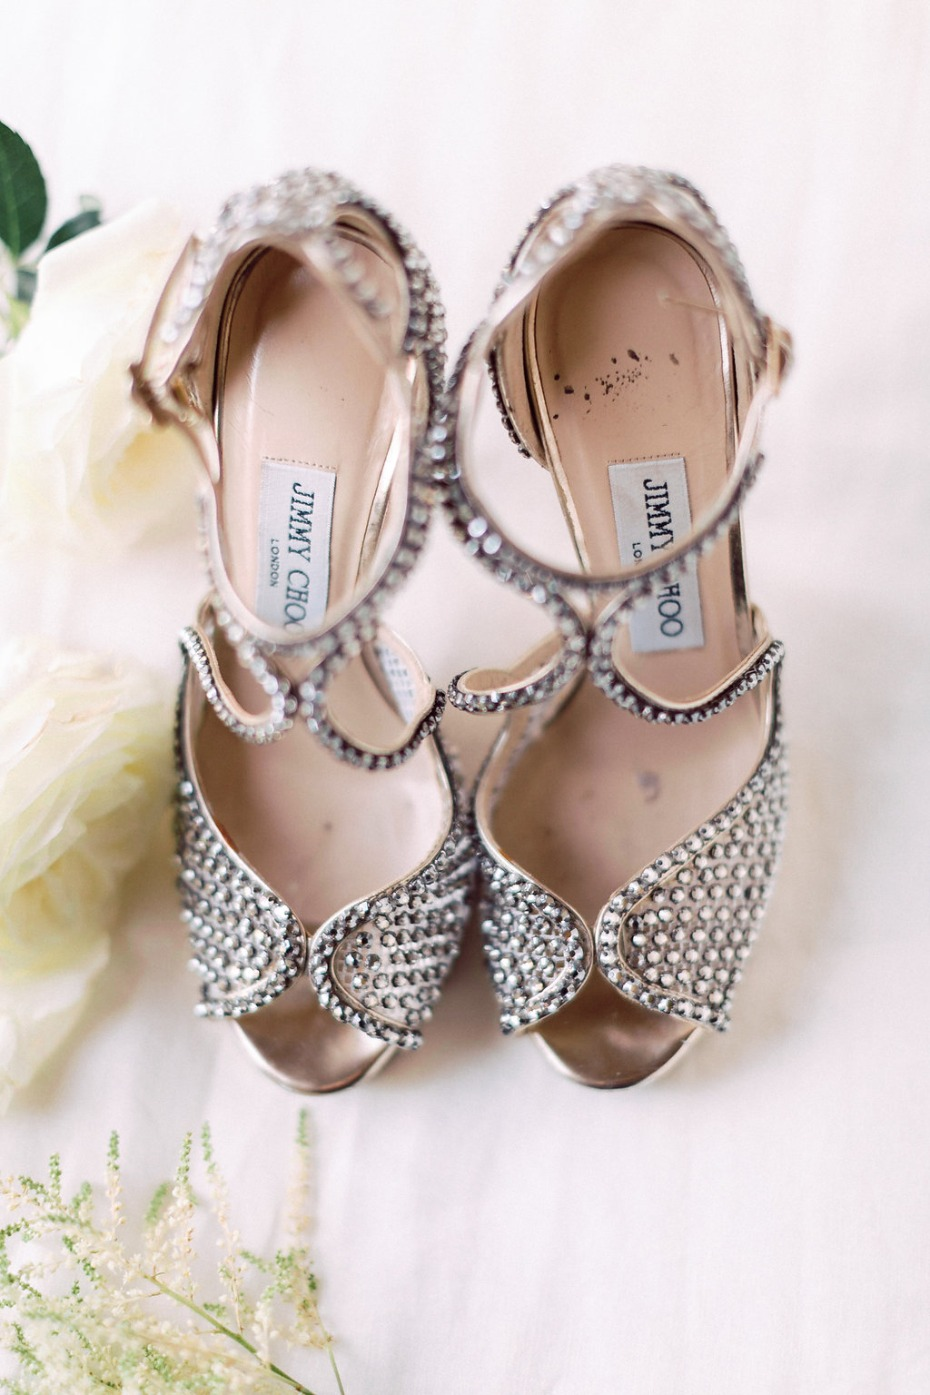 Sparkly Jimmy Choo heels for the bride